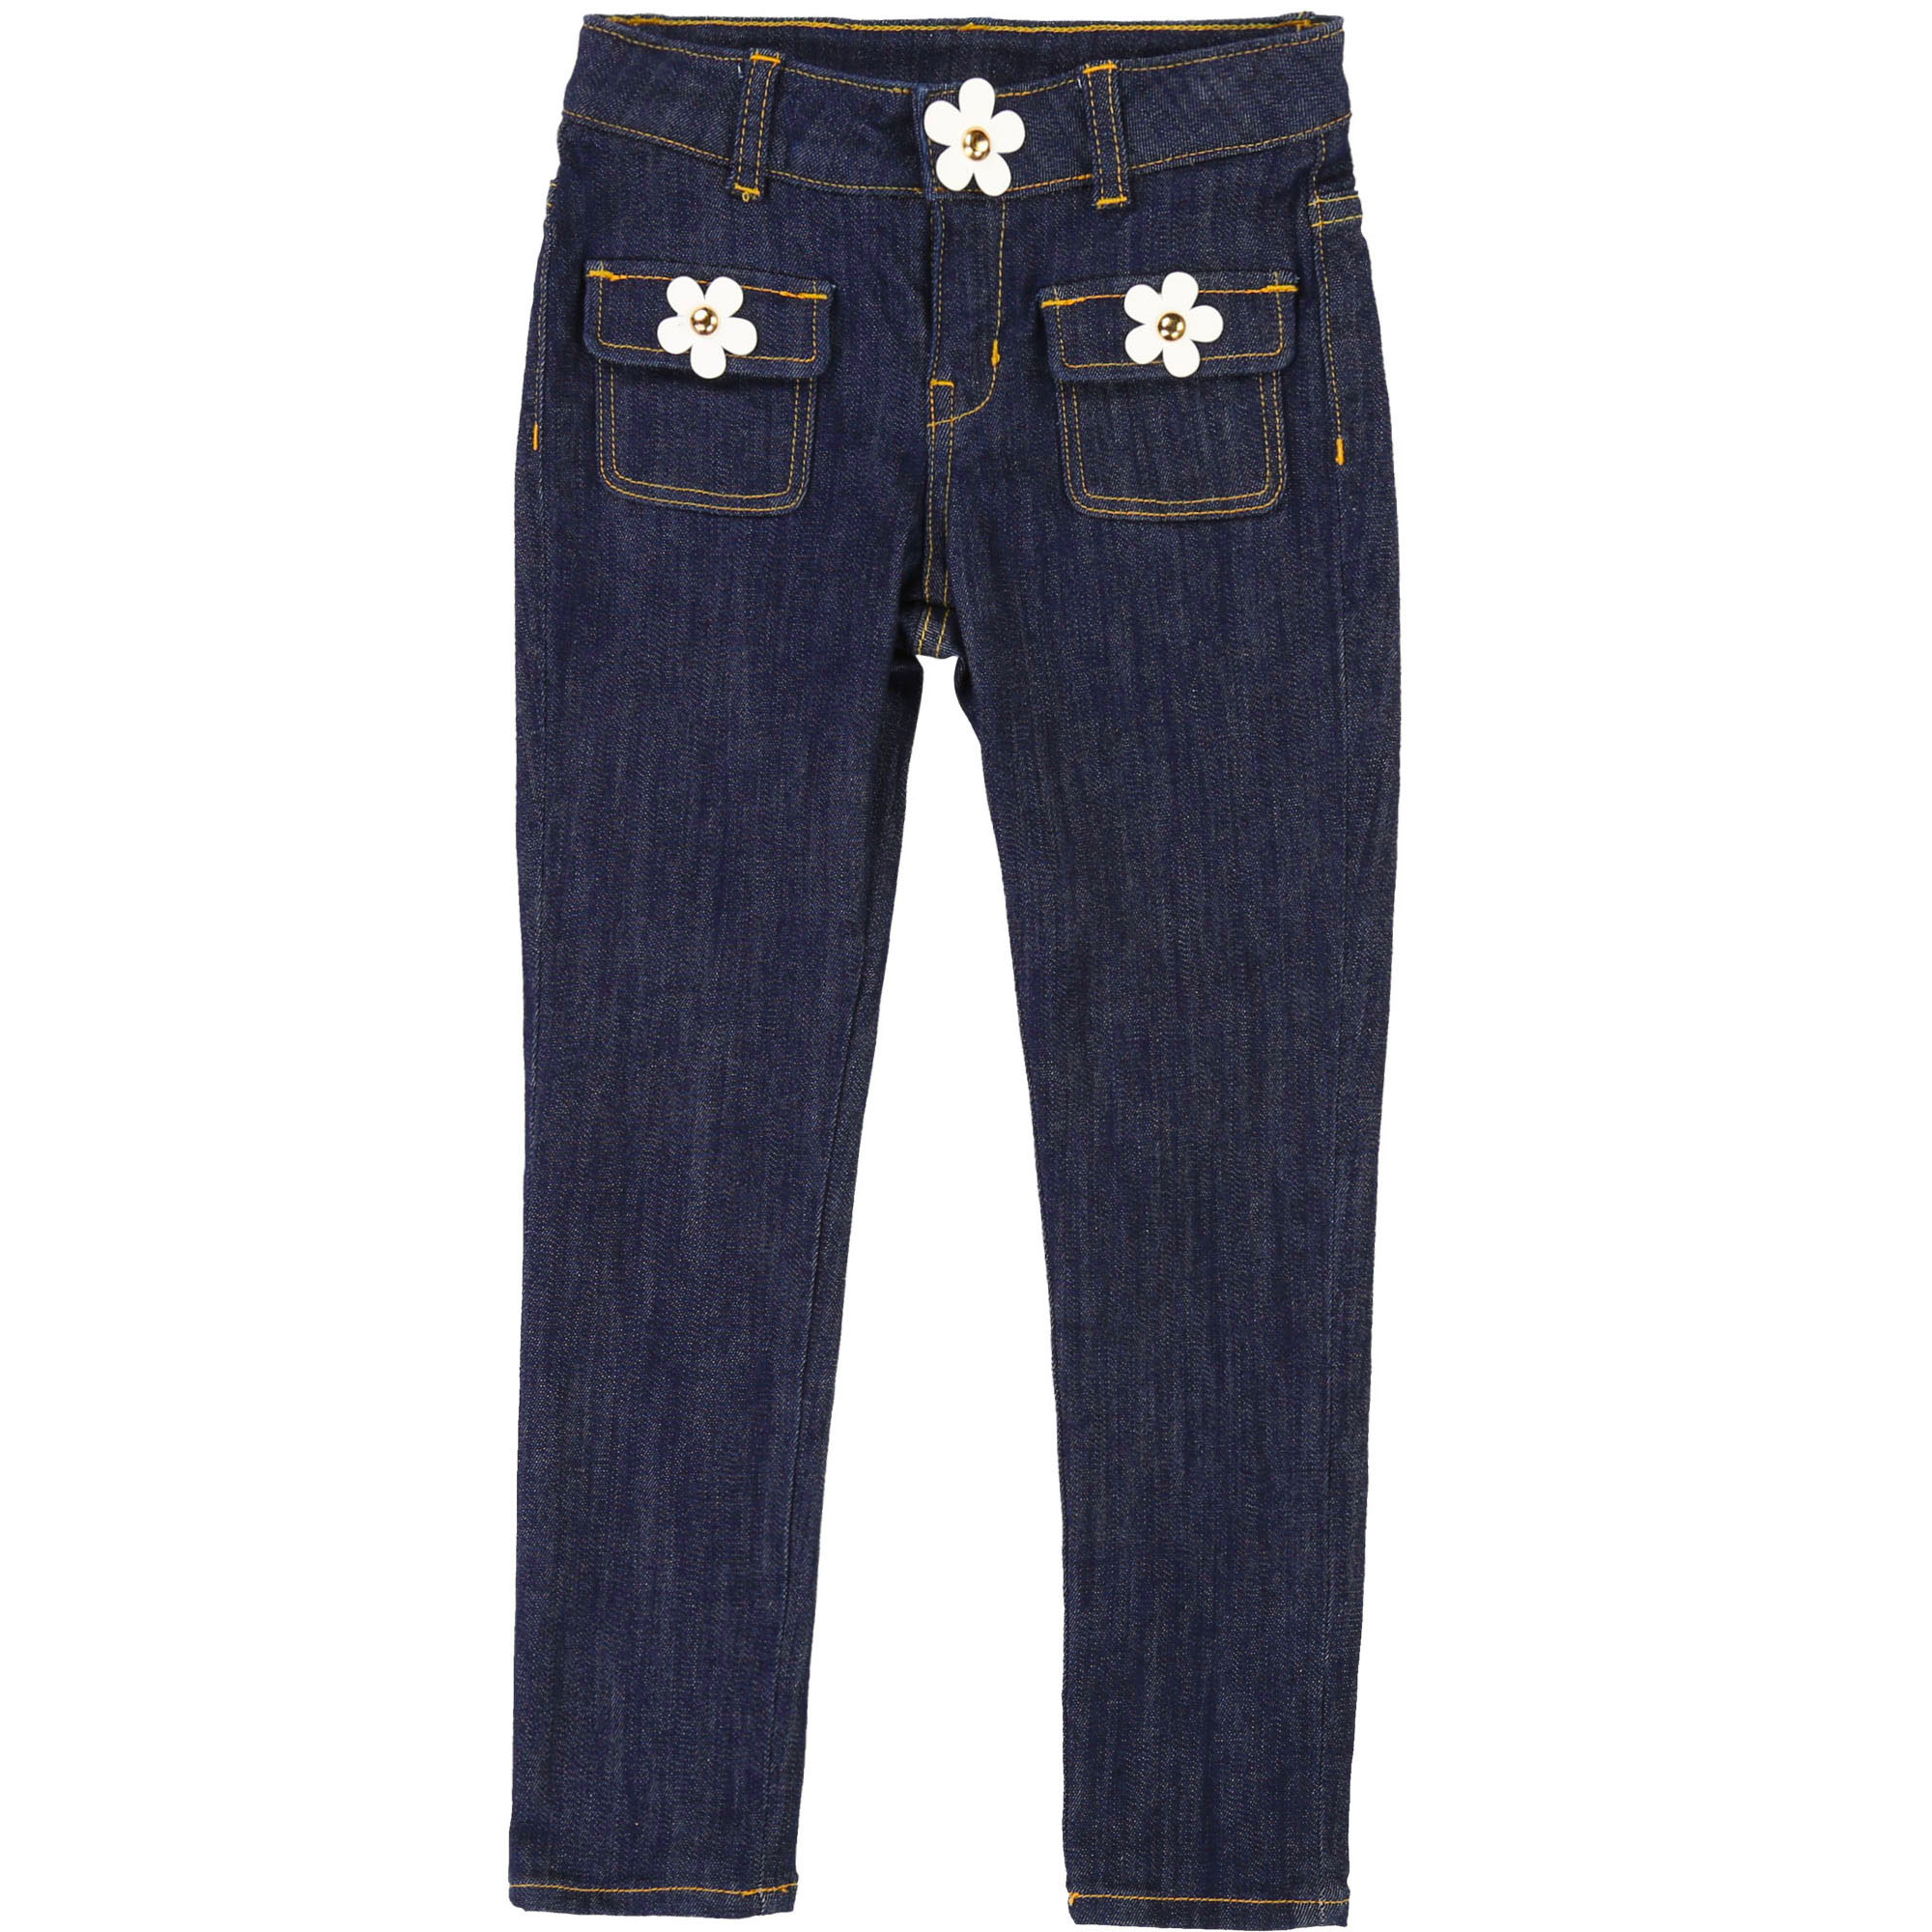 Slim-fit floral jeans LITTLE MARC JACOBS for GIRL